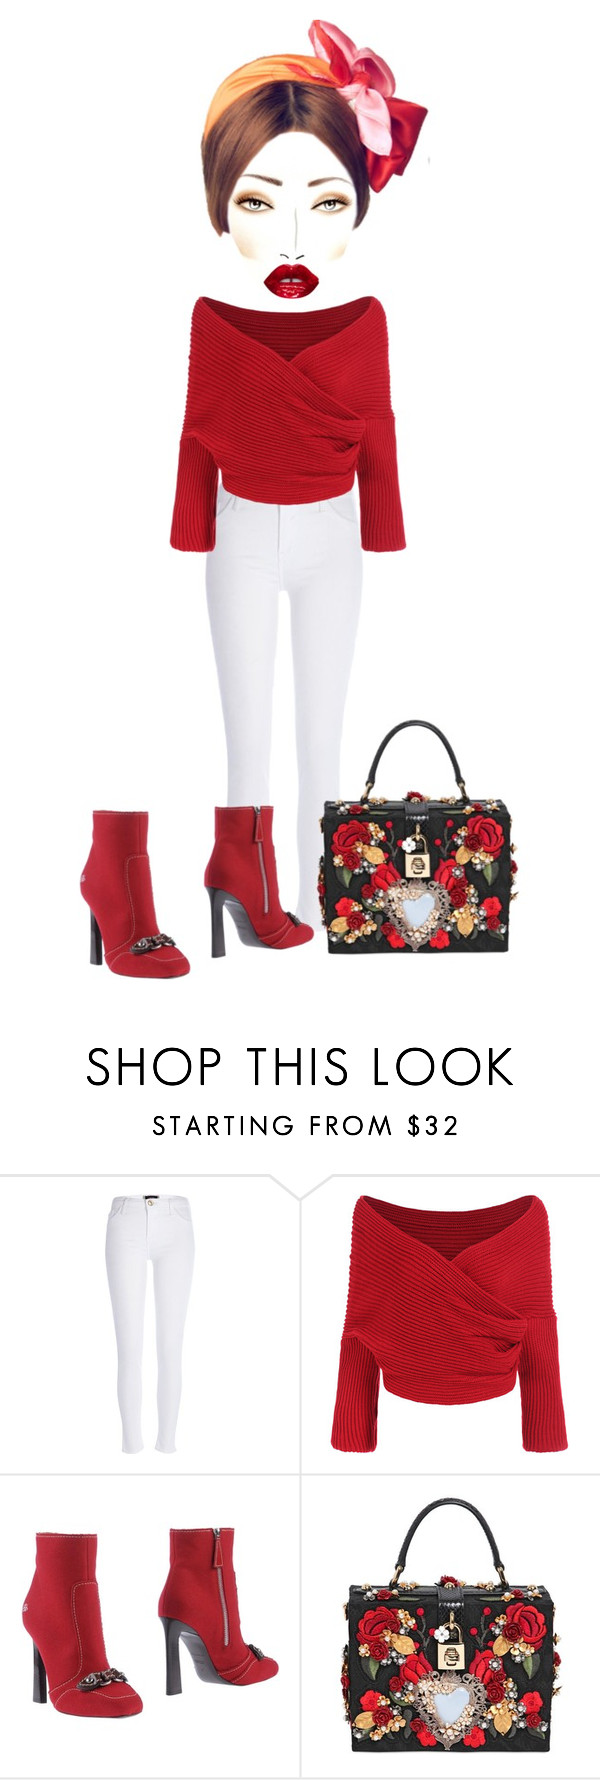 """""""Untitled #4158"""" by cristalabron ❤ liked on Polyvore featuring River Island, Dsquared2 and Dolce&Gabbana"""